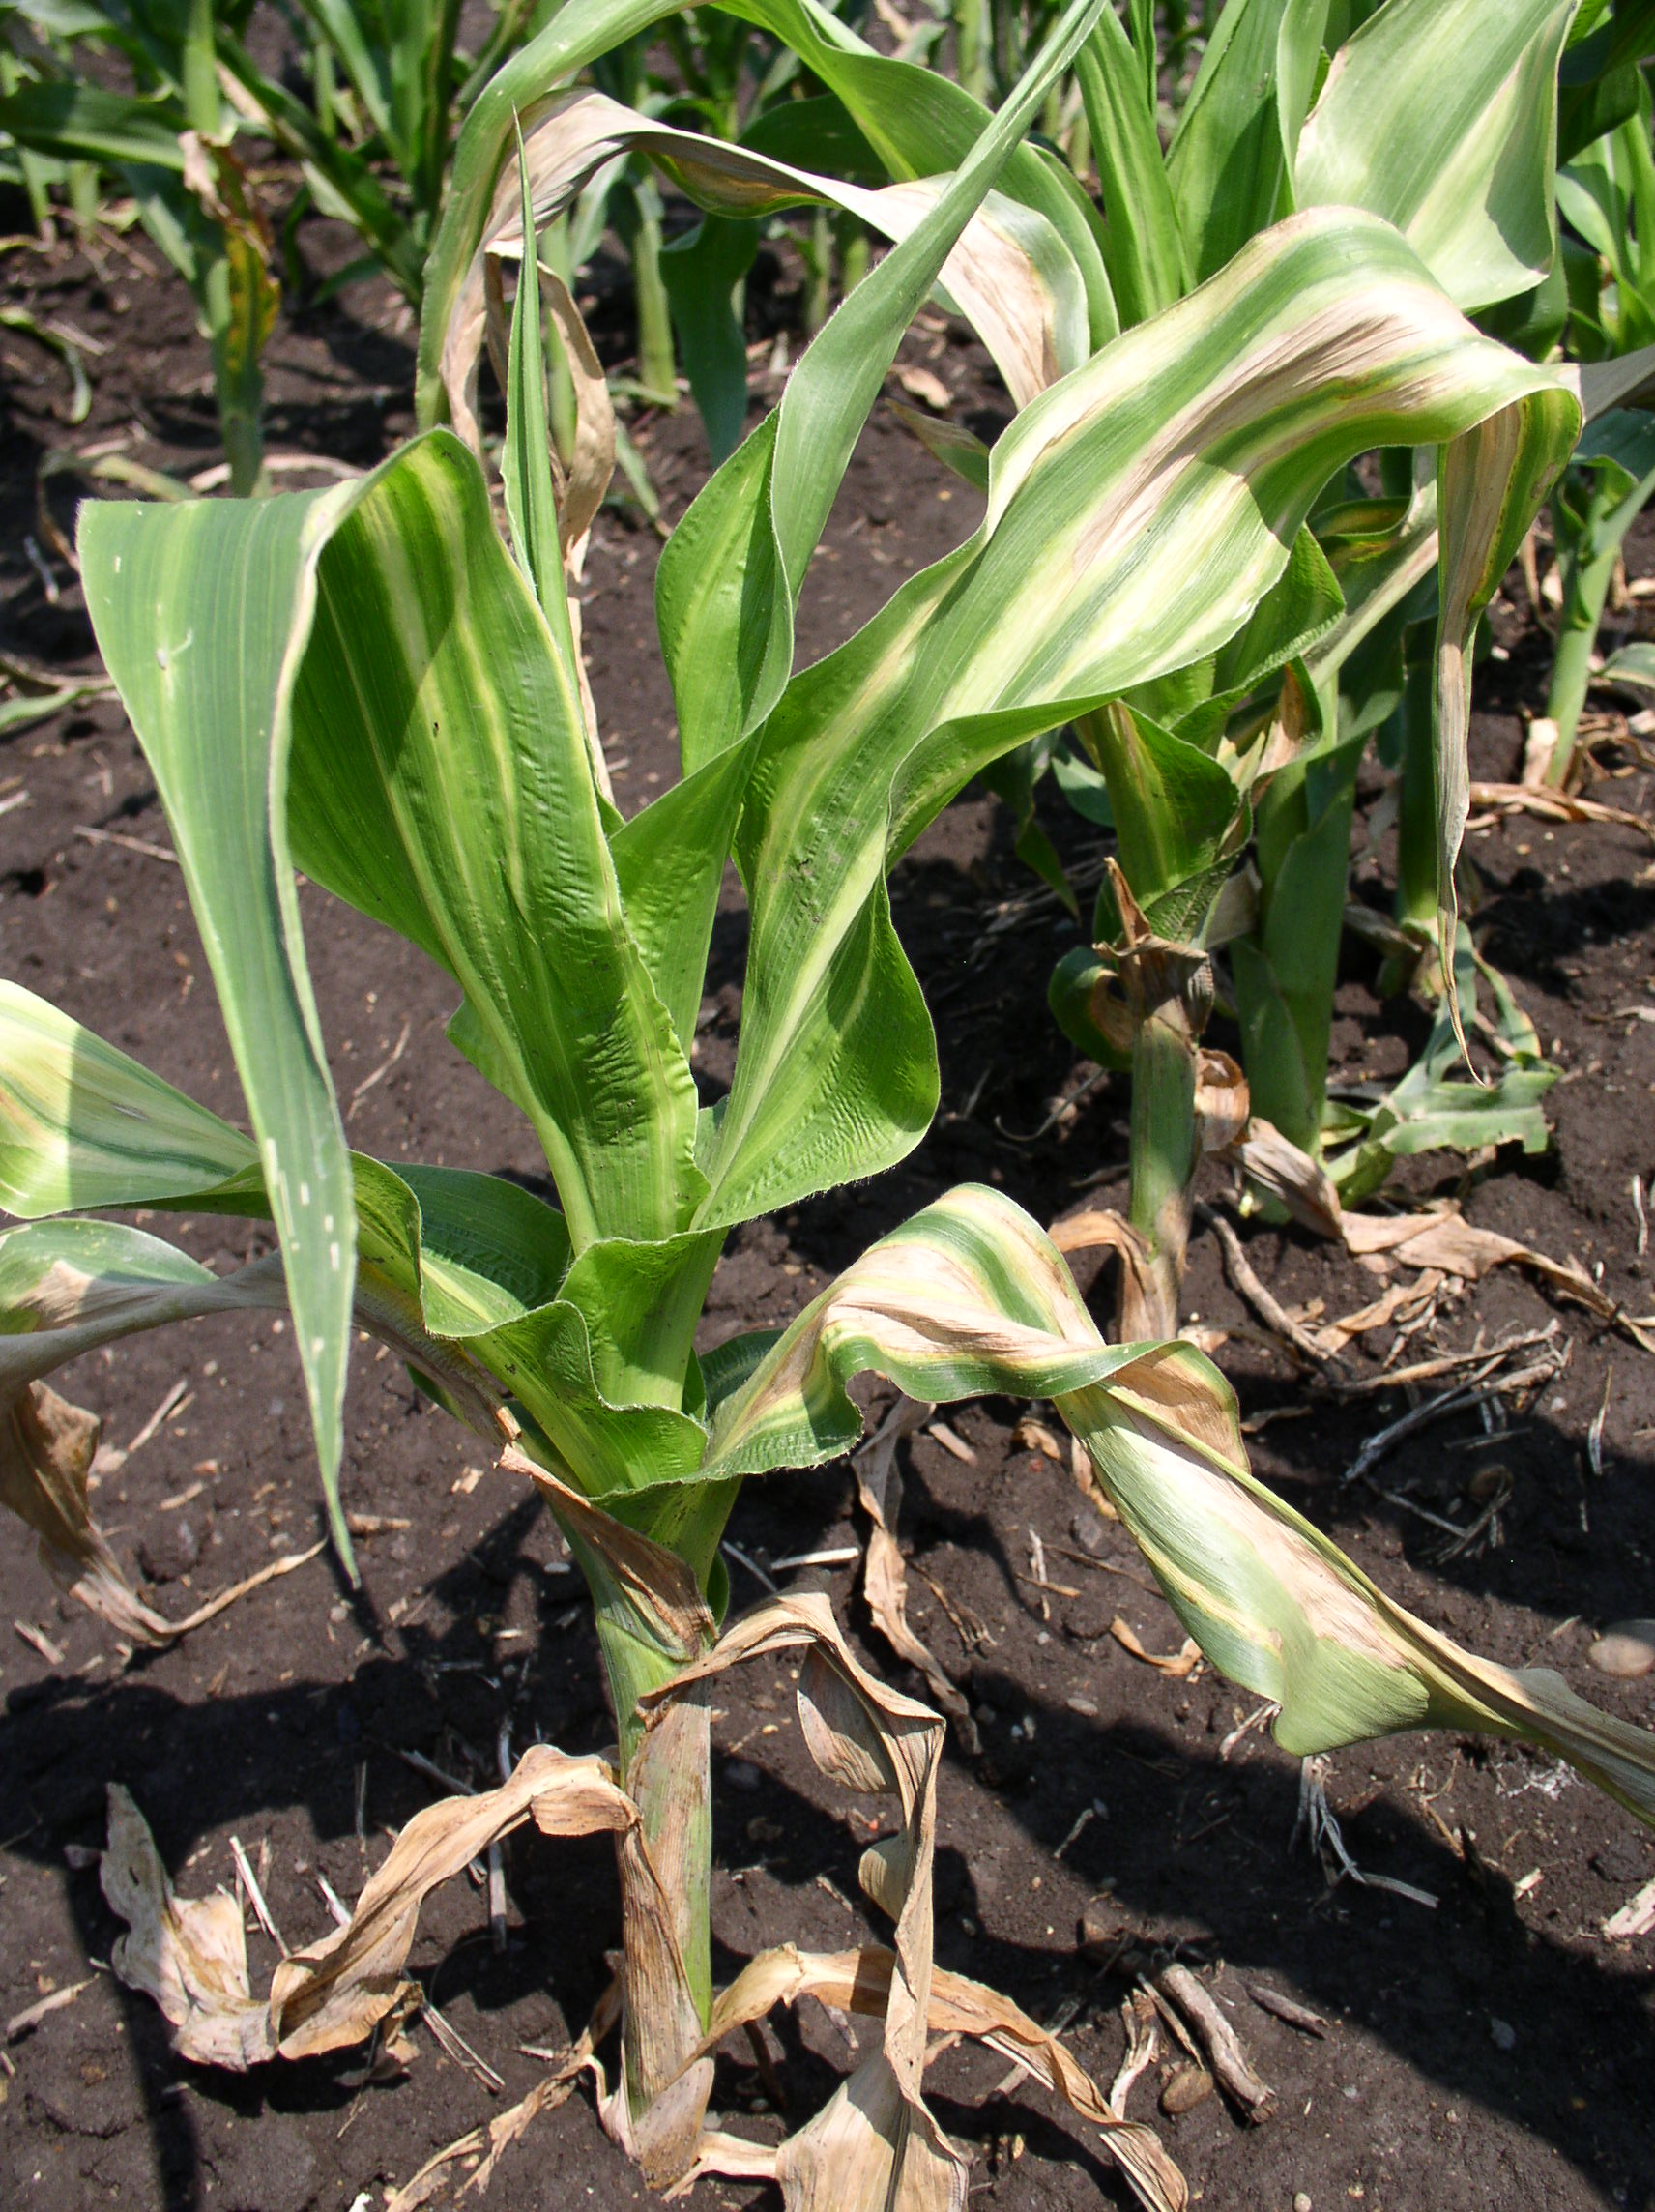 If stalk infection occurs, the entire plant will wilt.